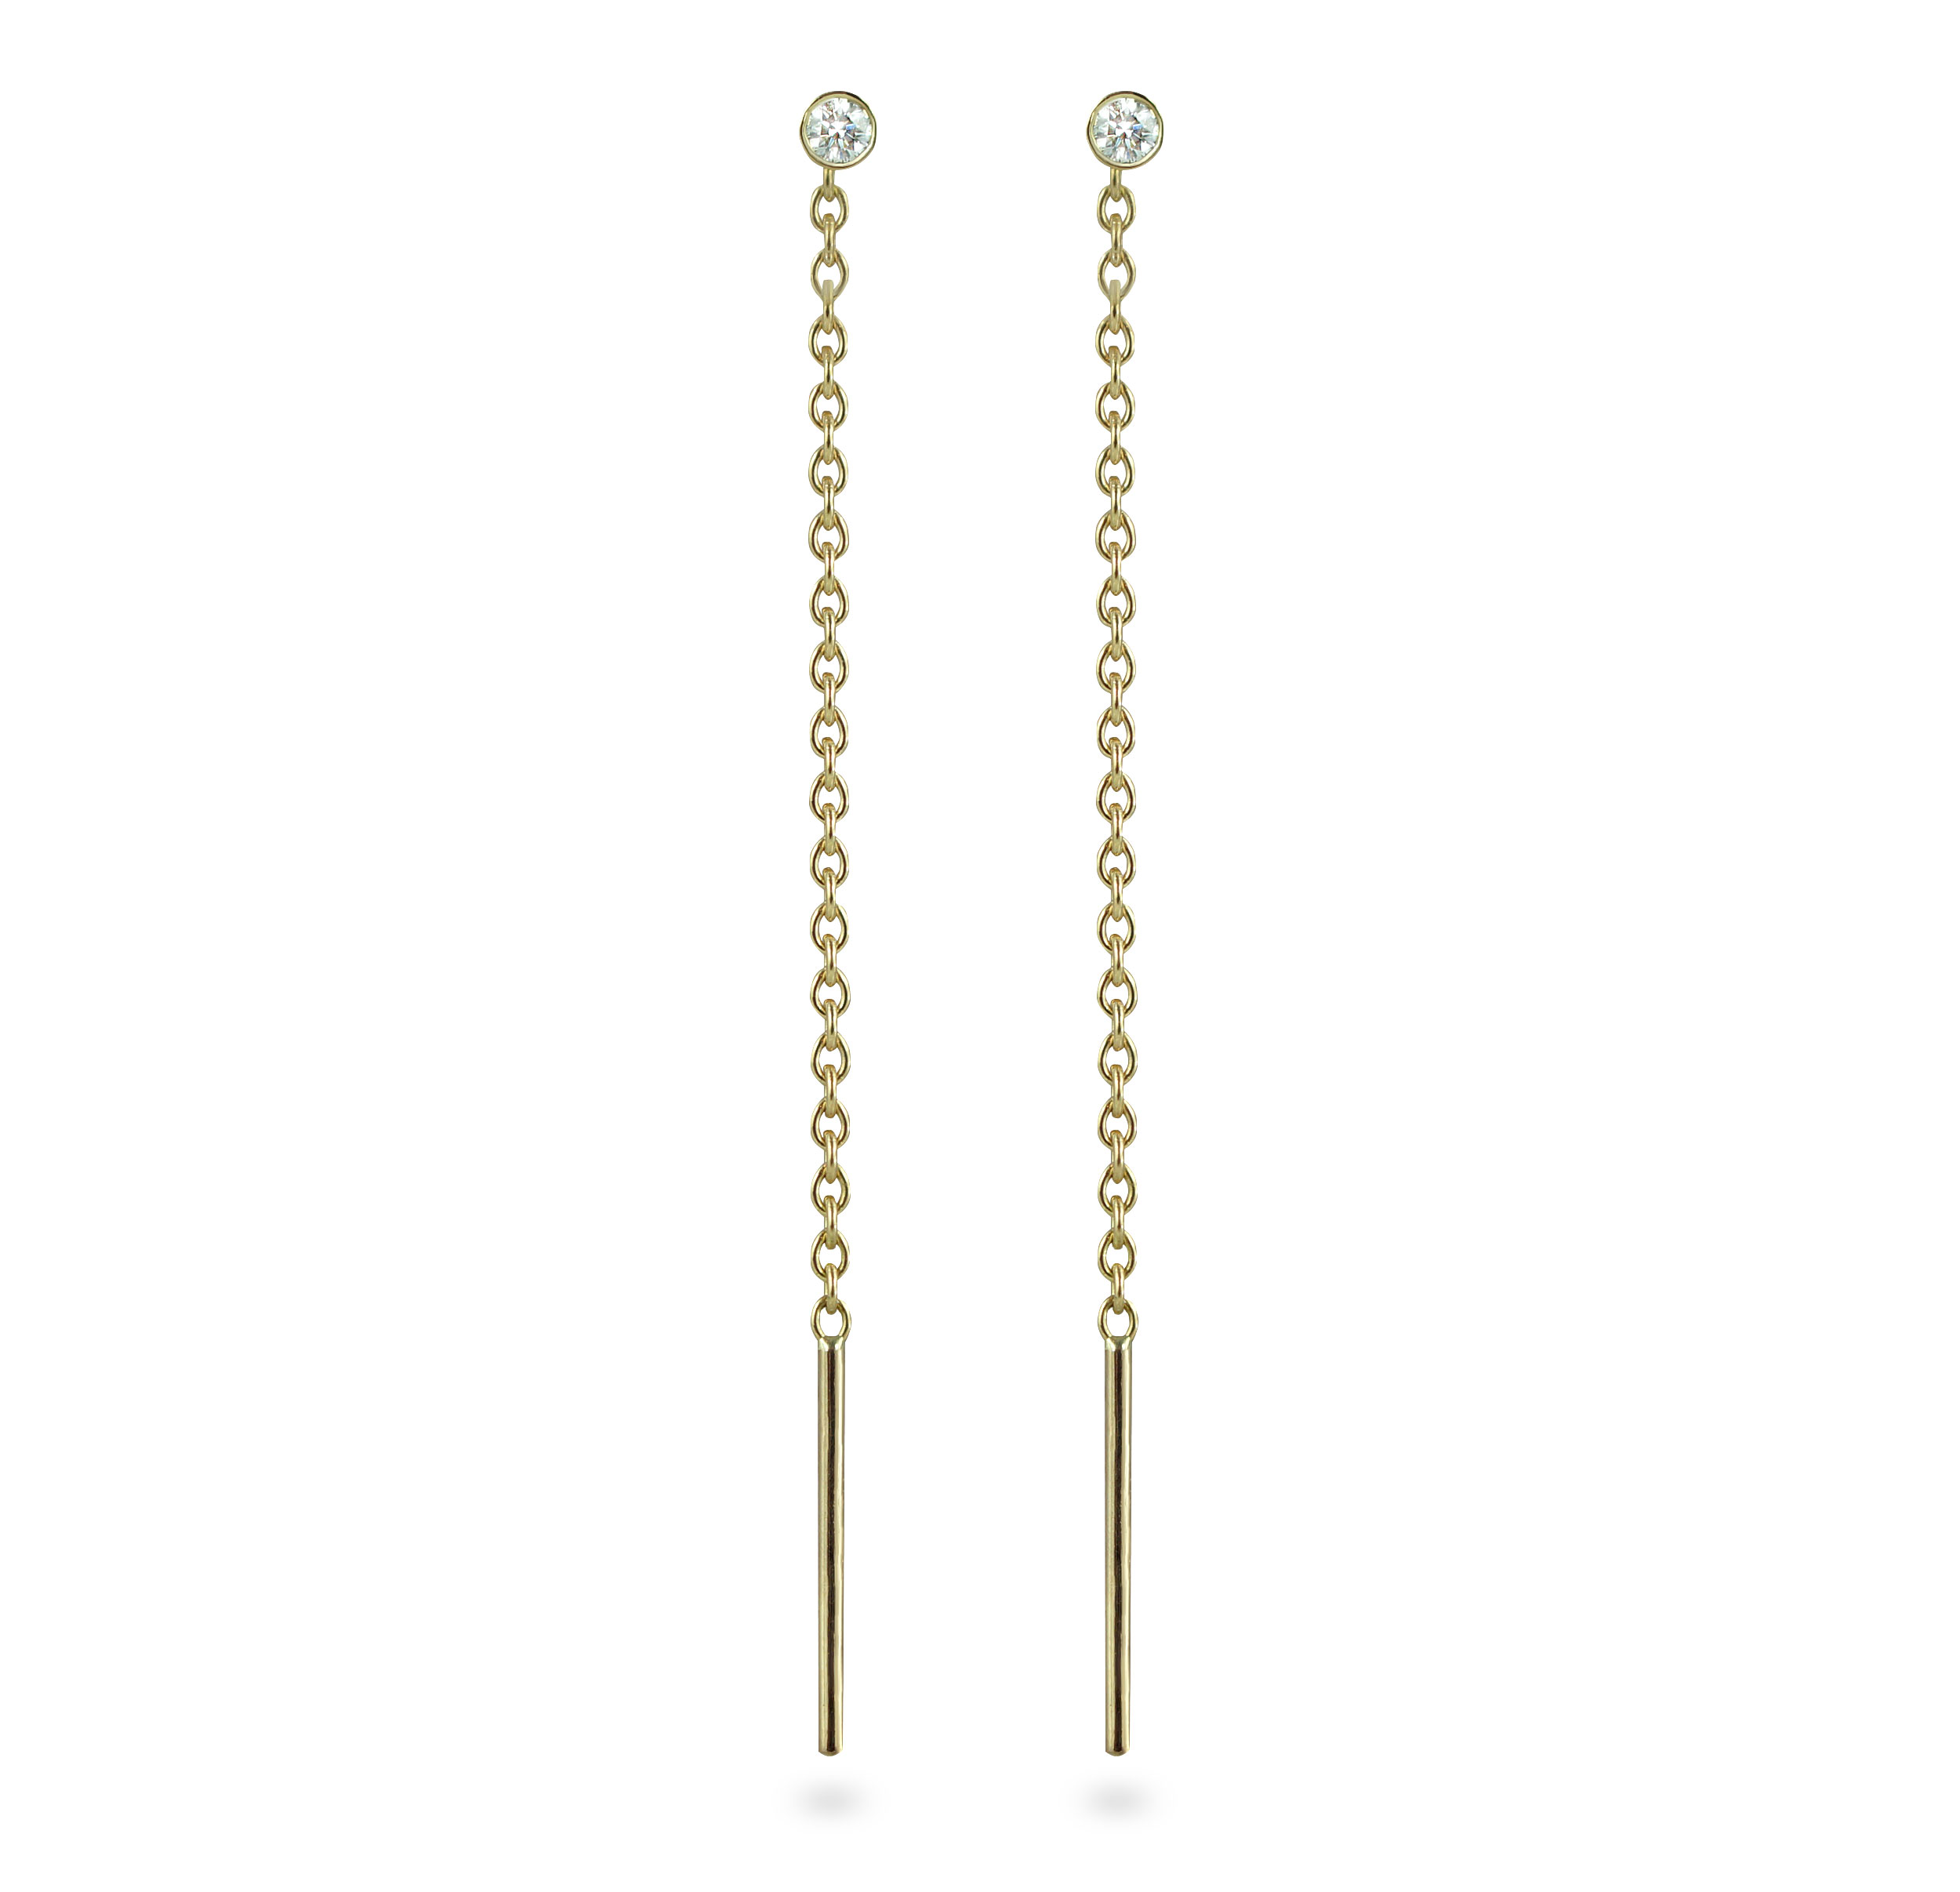 what-are-thread-earrings-18k-gold-threader-earrings-thread-the-metal-through-your-ear-so-that-it-falls-down-the-back-of-your-lobe-lena-cohen-fine-jewellery